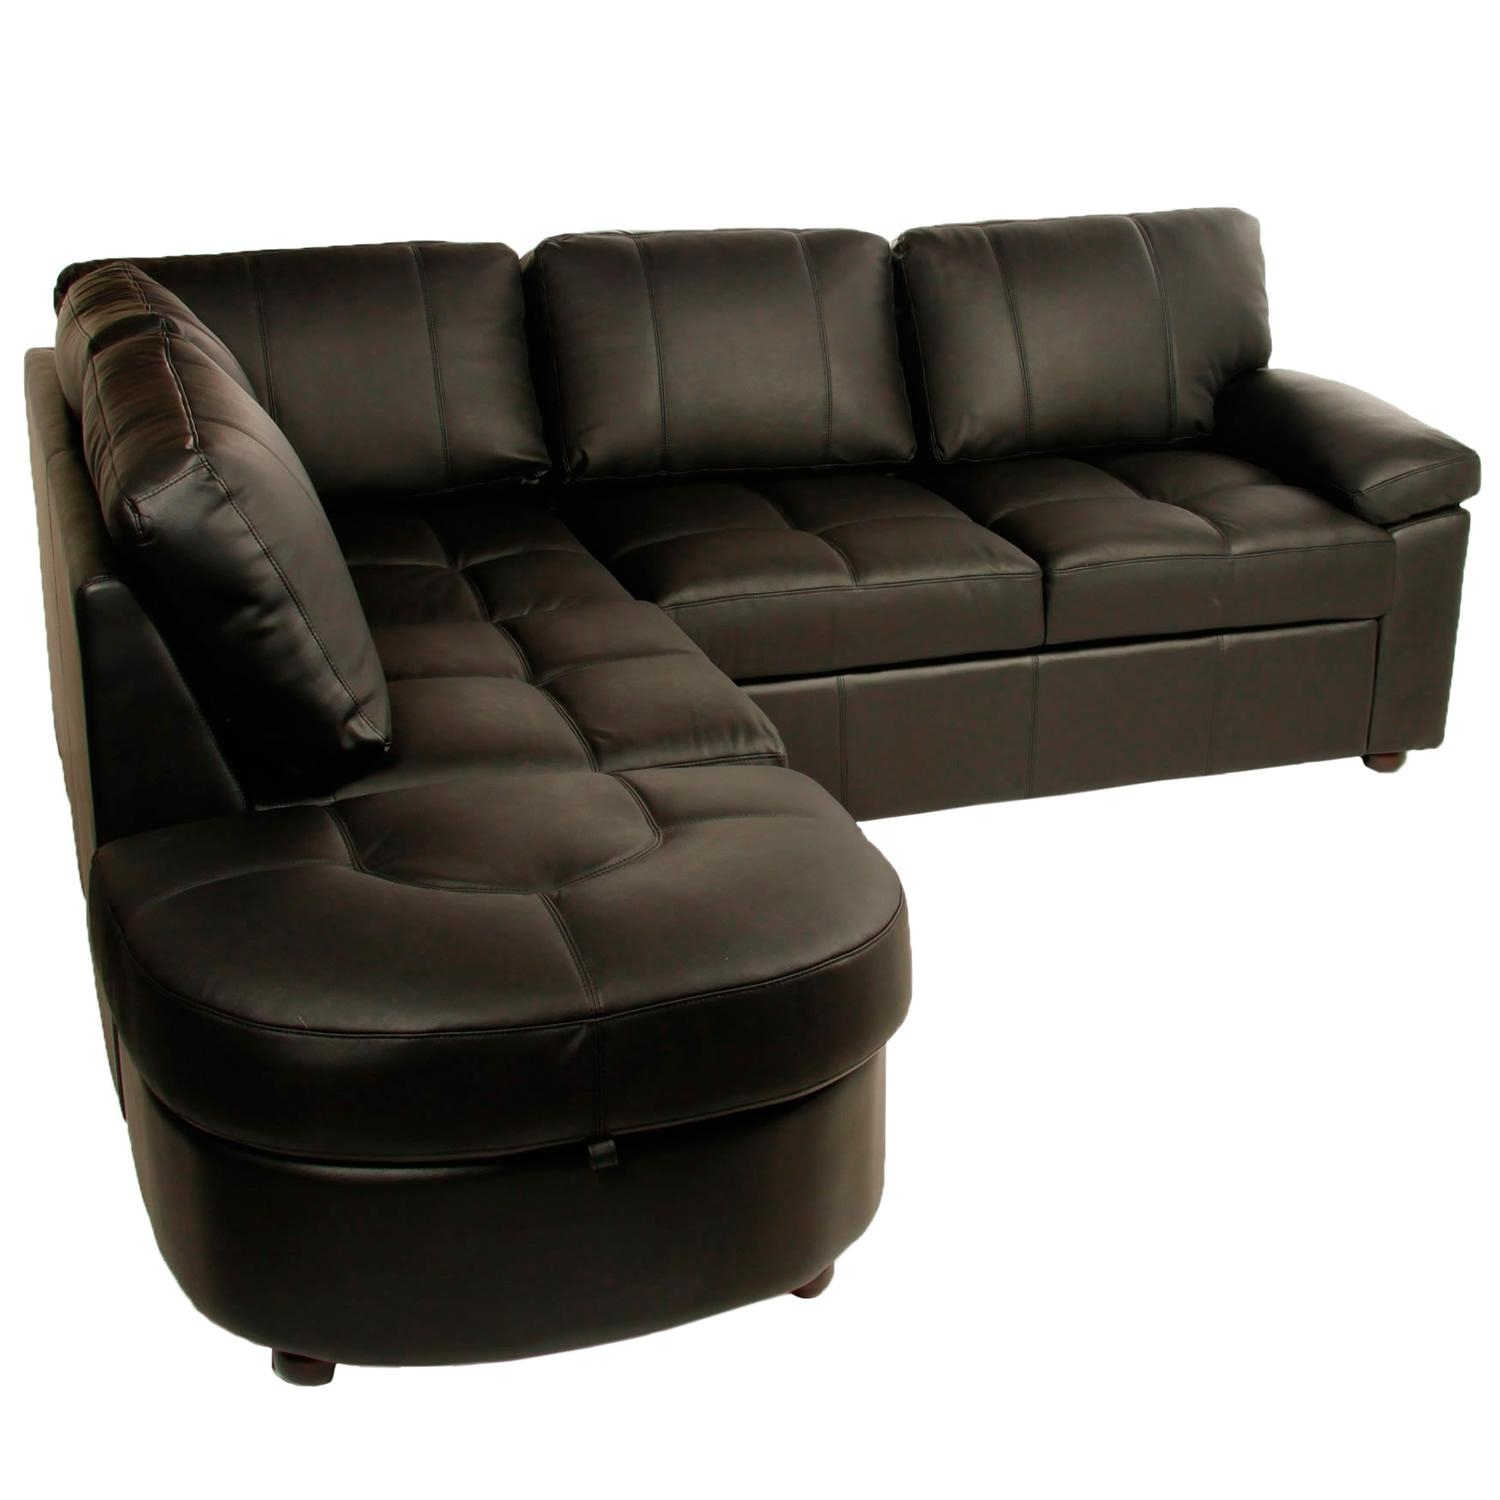 Sofa Bed Leather Corner | Tehranmix Decoration With Leather Sofa Beds With Storage (Image 18 of 20)